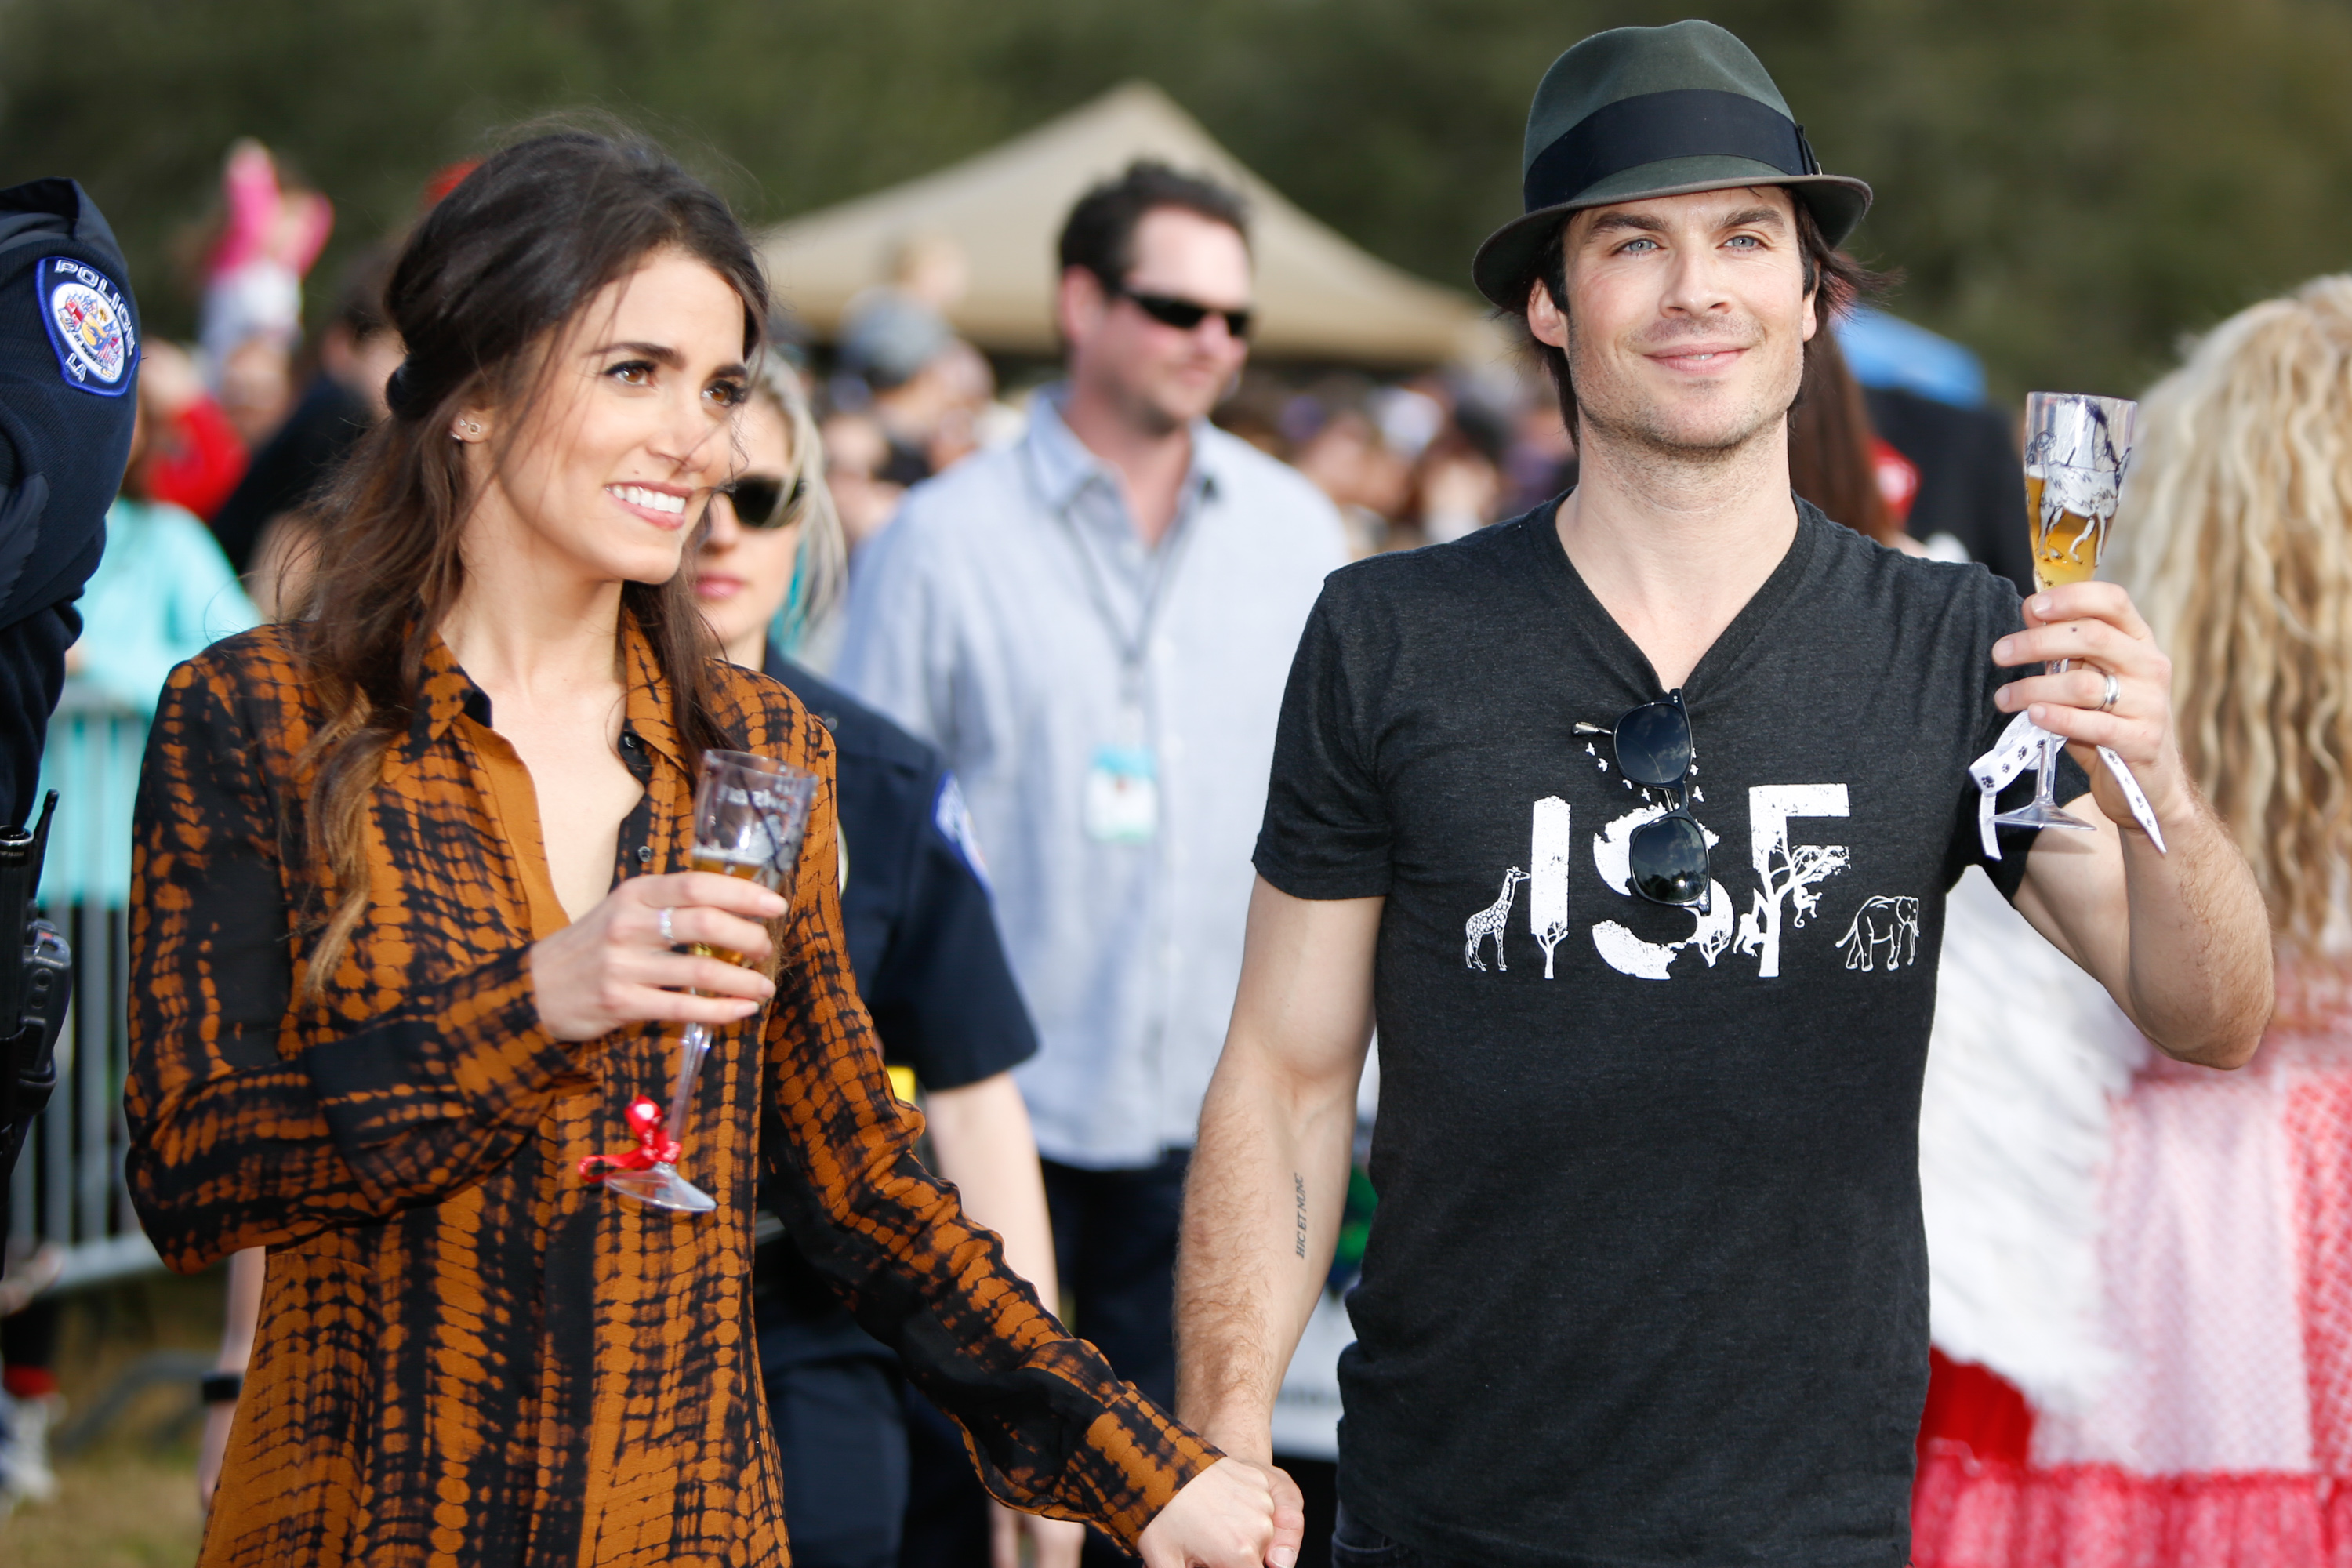 Ian Somerhalder and Nikki ReedJason Forte